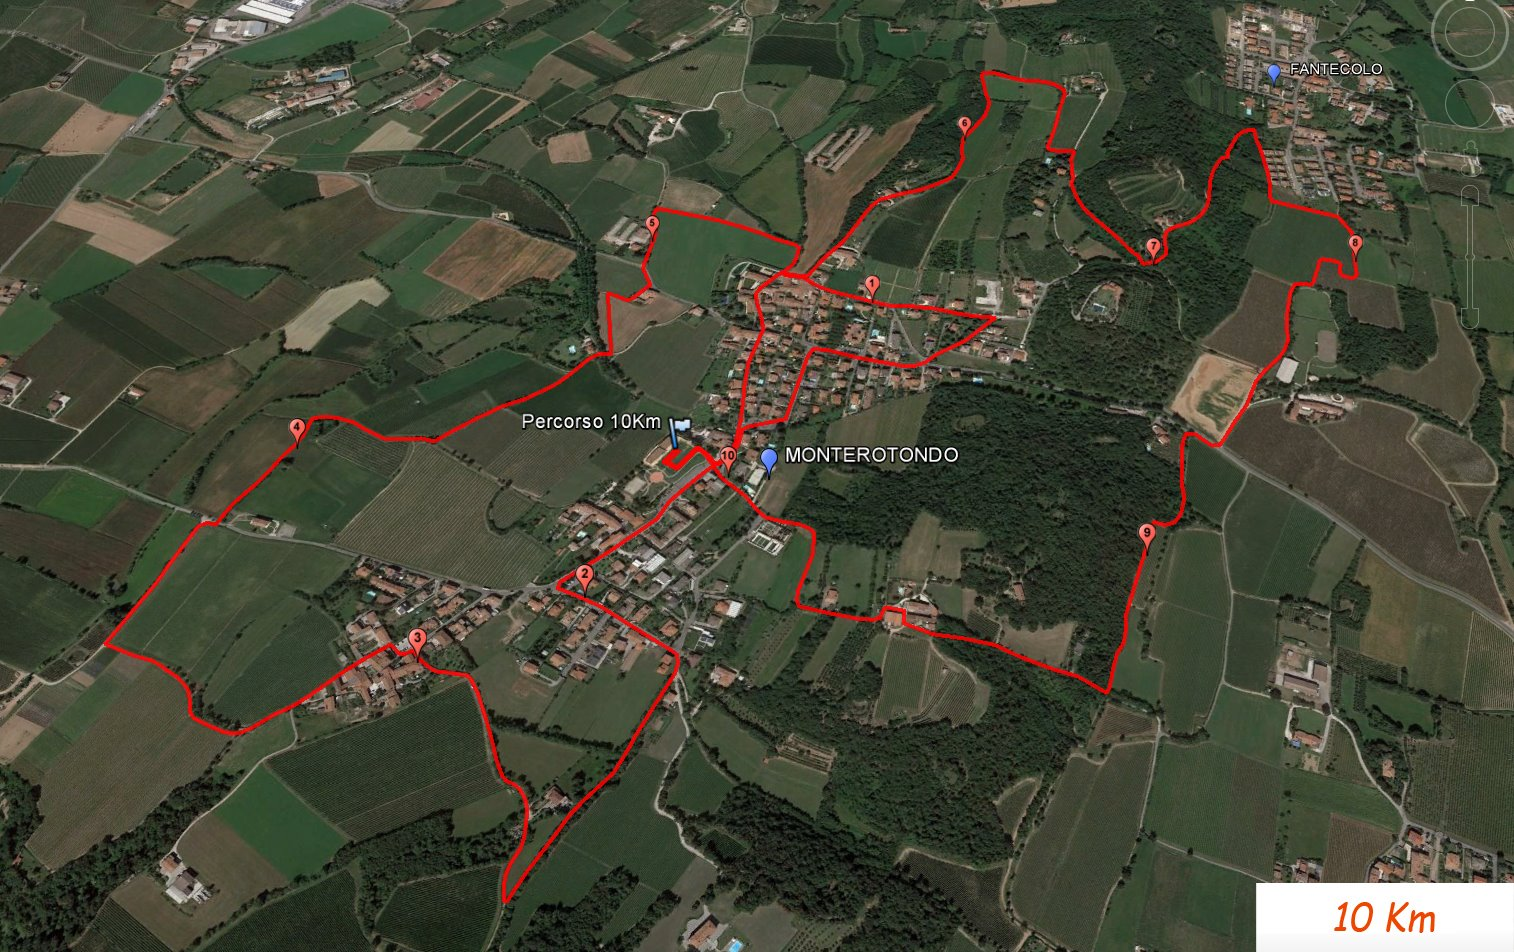 Contry Run 3 Colline - percorso 10 Km